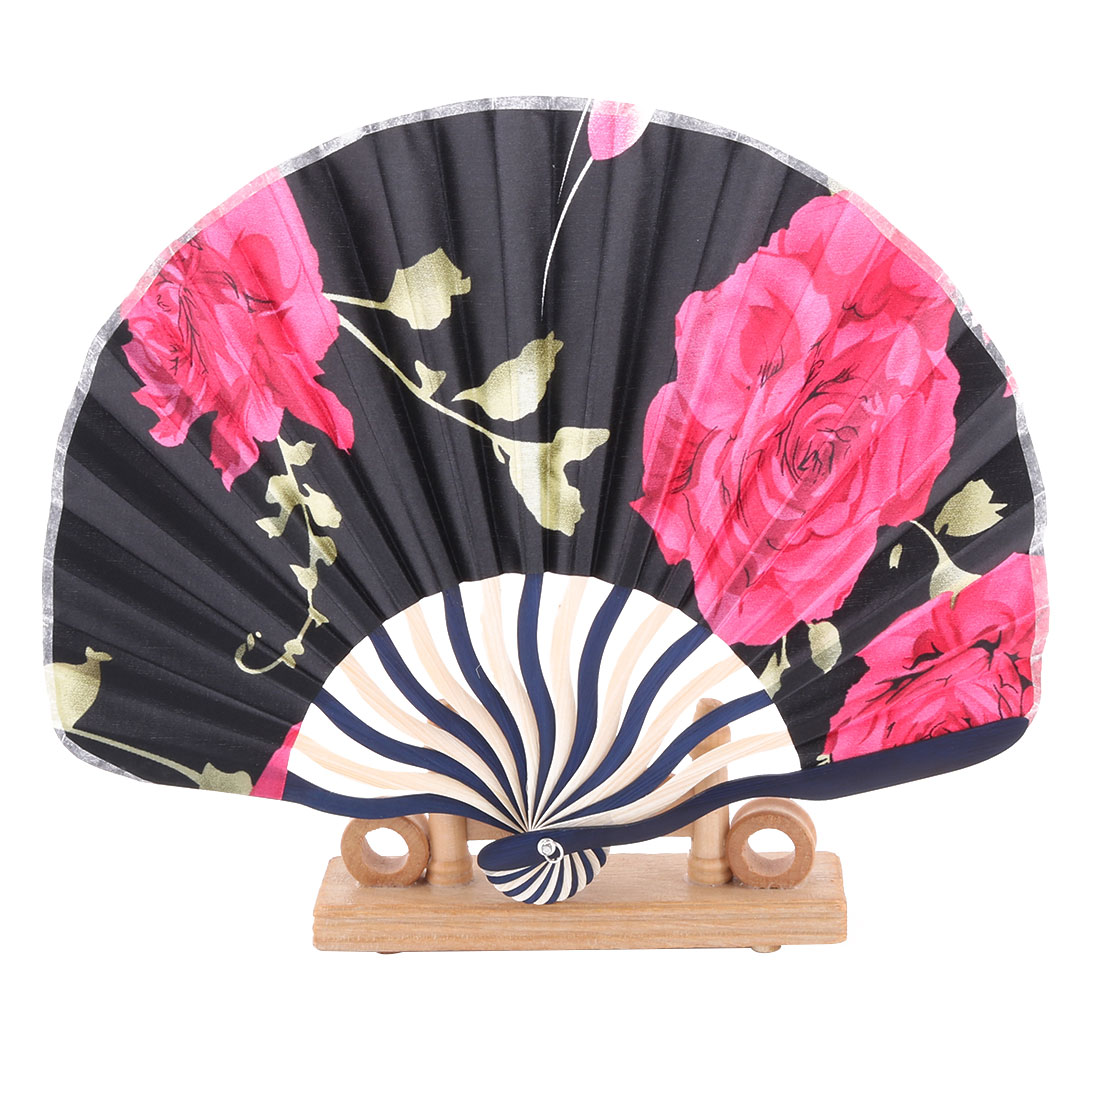 Dancing Flower Pattern Chinese Craft Folding Hand Fan Display Multicolor 2 in 1